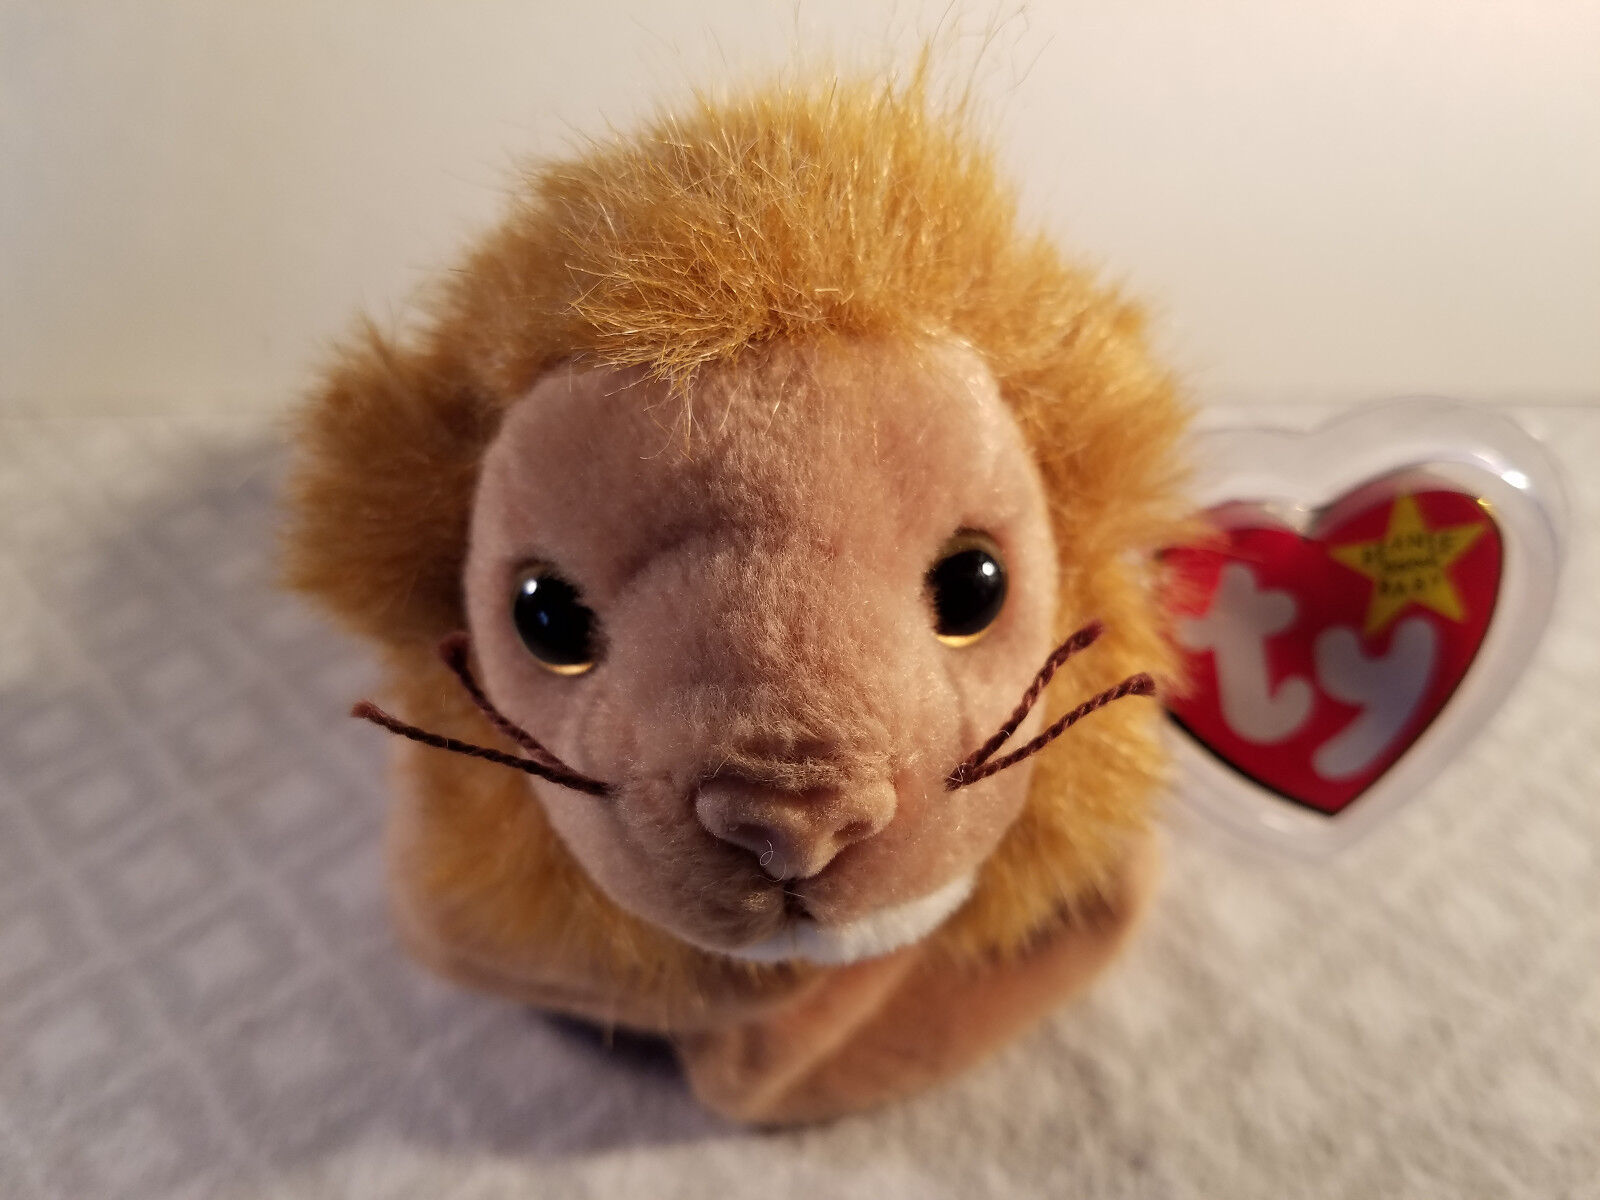 New 1996 Roary Retired Ty Beanie Baby Lion PVC Pellets Stuffed Plush Animal Toy